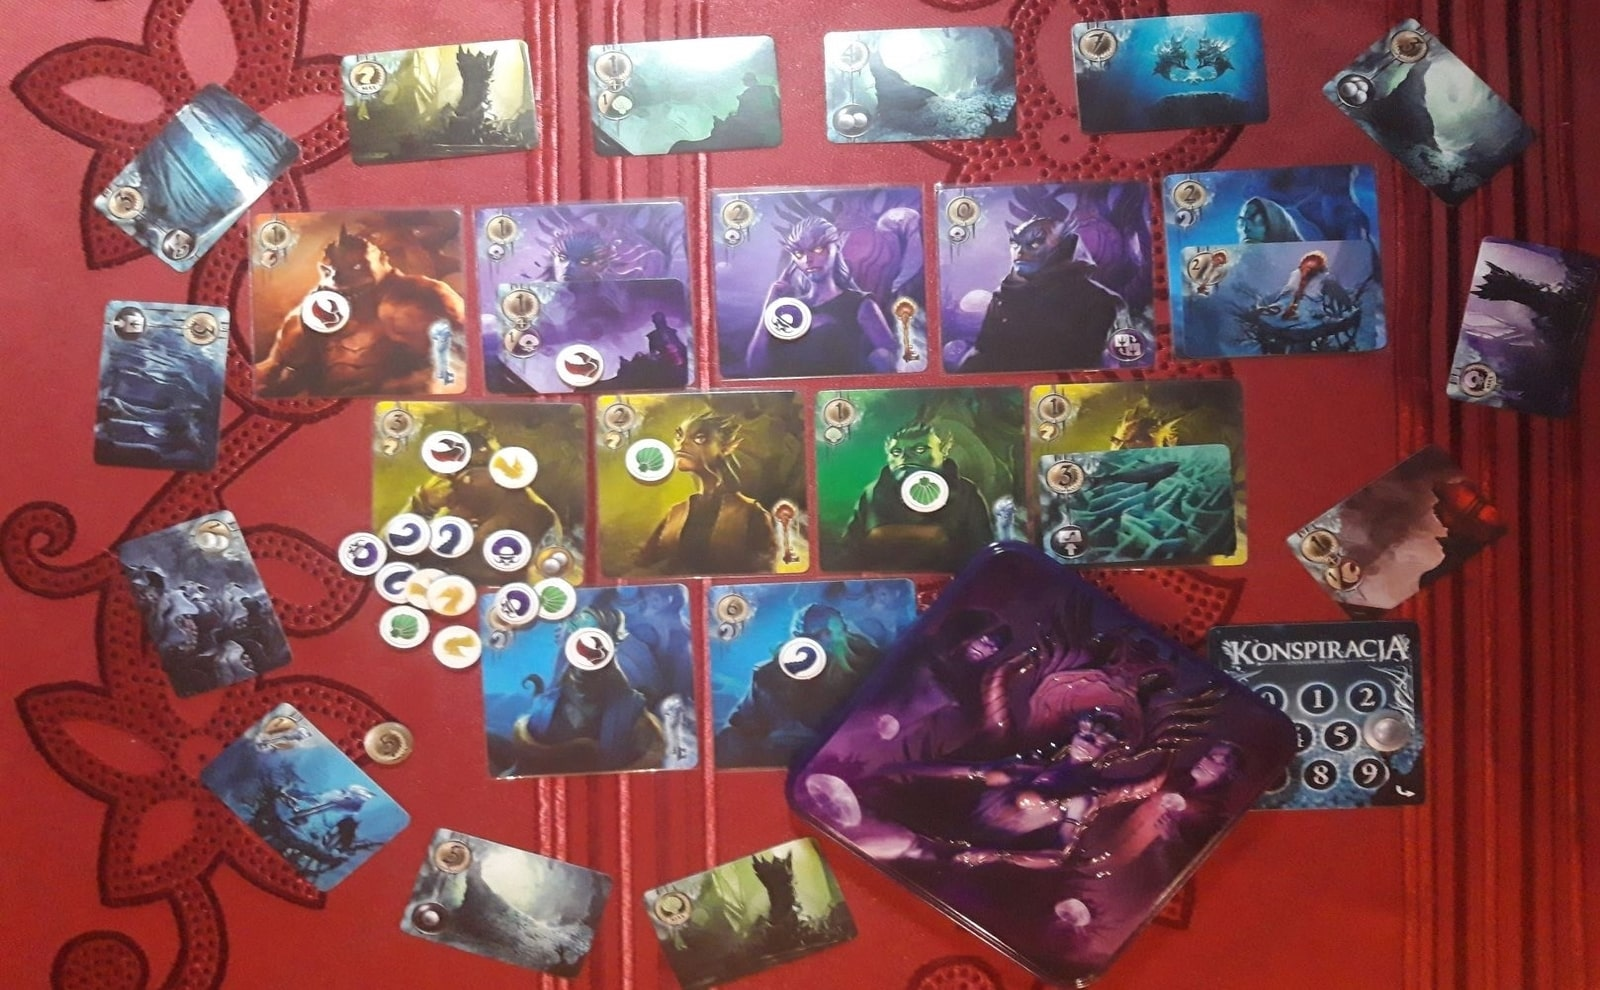 """There can be only one king of the undersea world - review of the board game """"Conspiracy: The Abyss Universe"""""""